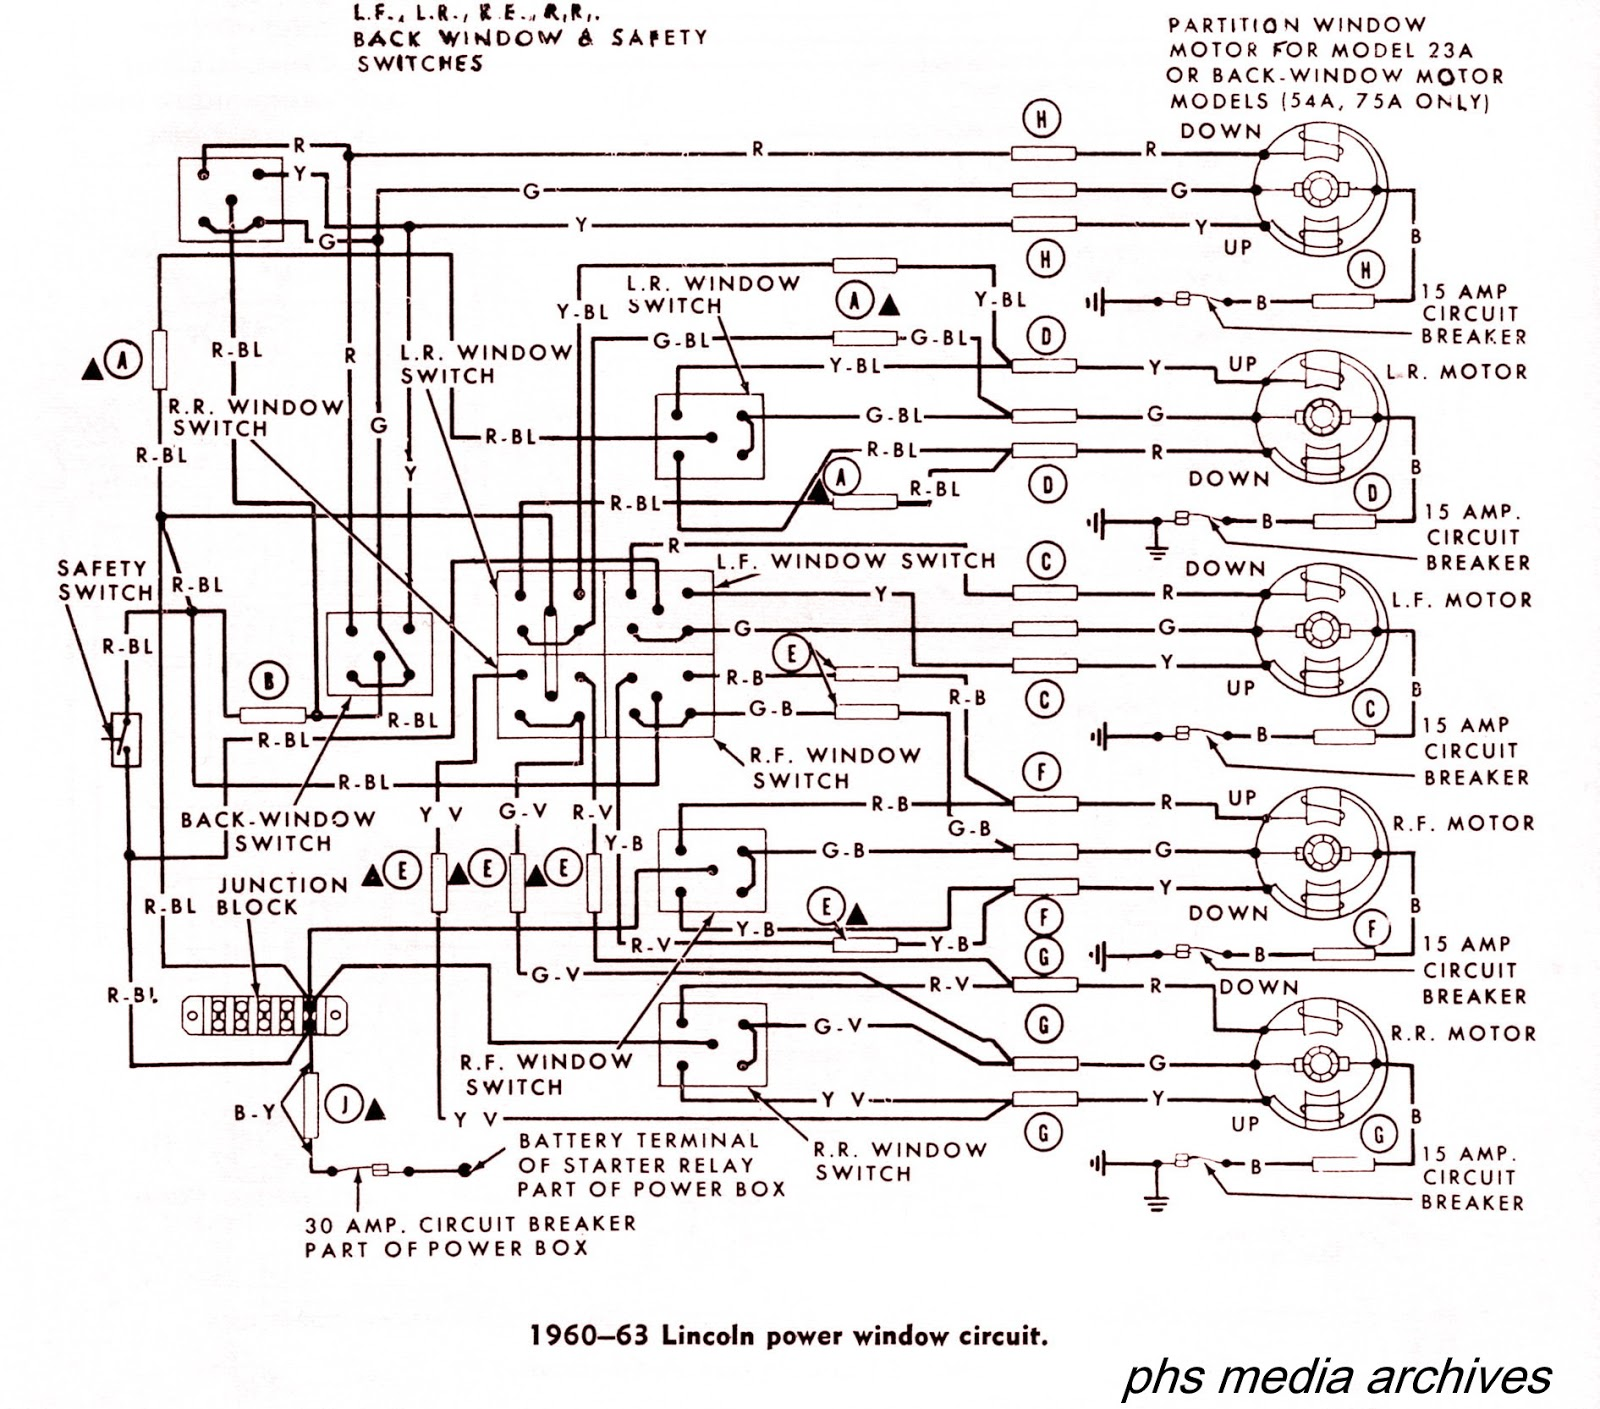 Lincoln 14 0 Hd Wiring Diagram Library Right Click On Image For Enlargement Tech Series 1960 1964 Diagrams